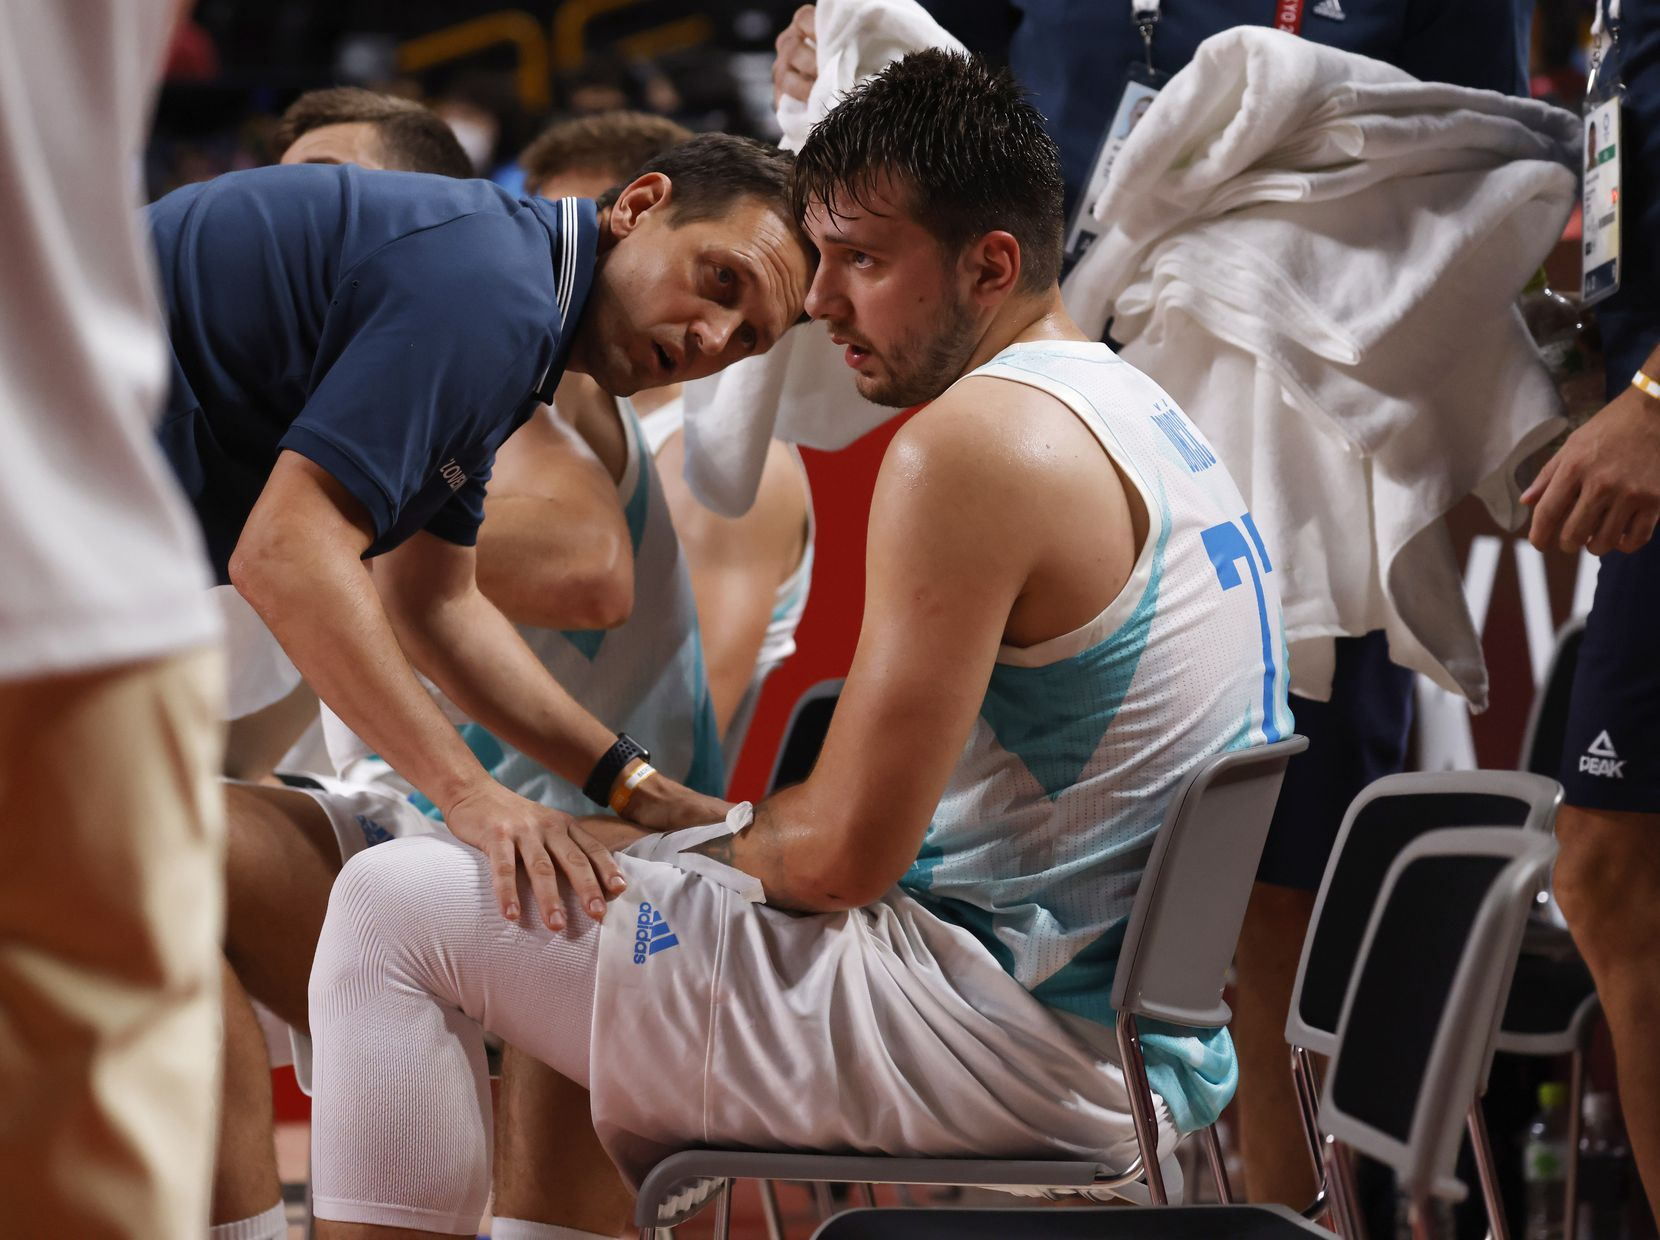 Slovenia's head coach Aleksander Sekulic consoles Luka Doncic (77) as he sits on the bench during a timeout in a game against Australia during the third quarter of play in the bronze medal basketball game at the postponed 2020 Tokyo Olympics at Saitama Super Arena, on Saturday, August 7, 2021, in Saitama, Japan. (Vernon Bryant/The Dallas Morning News)